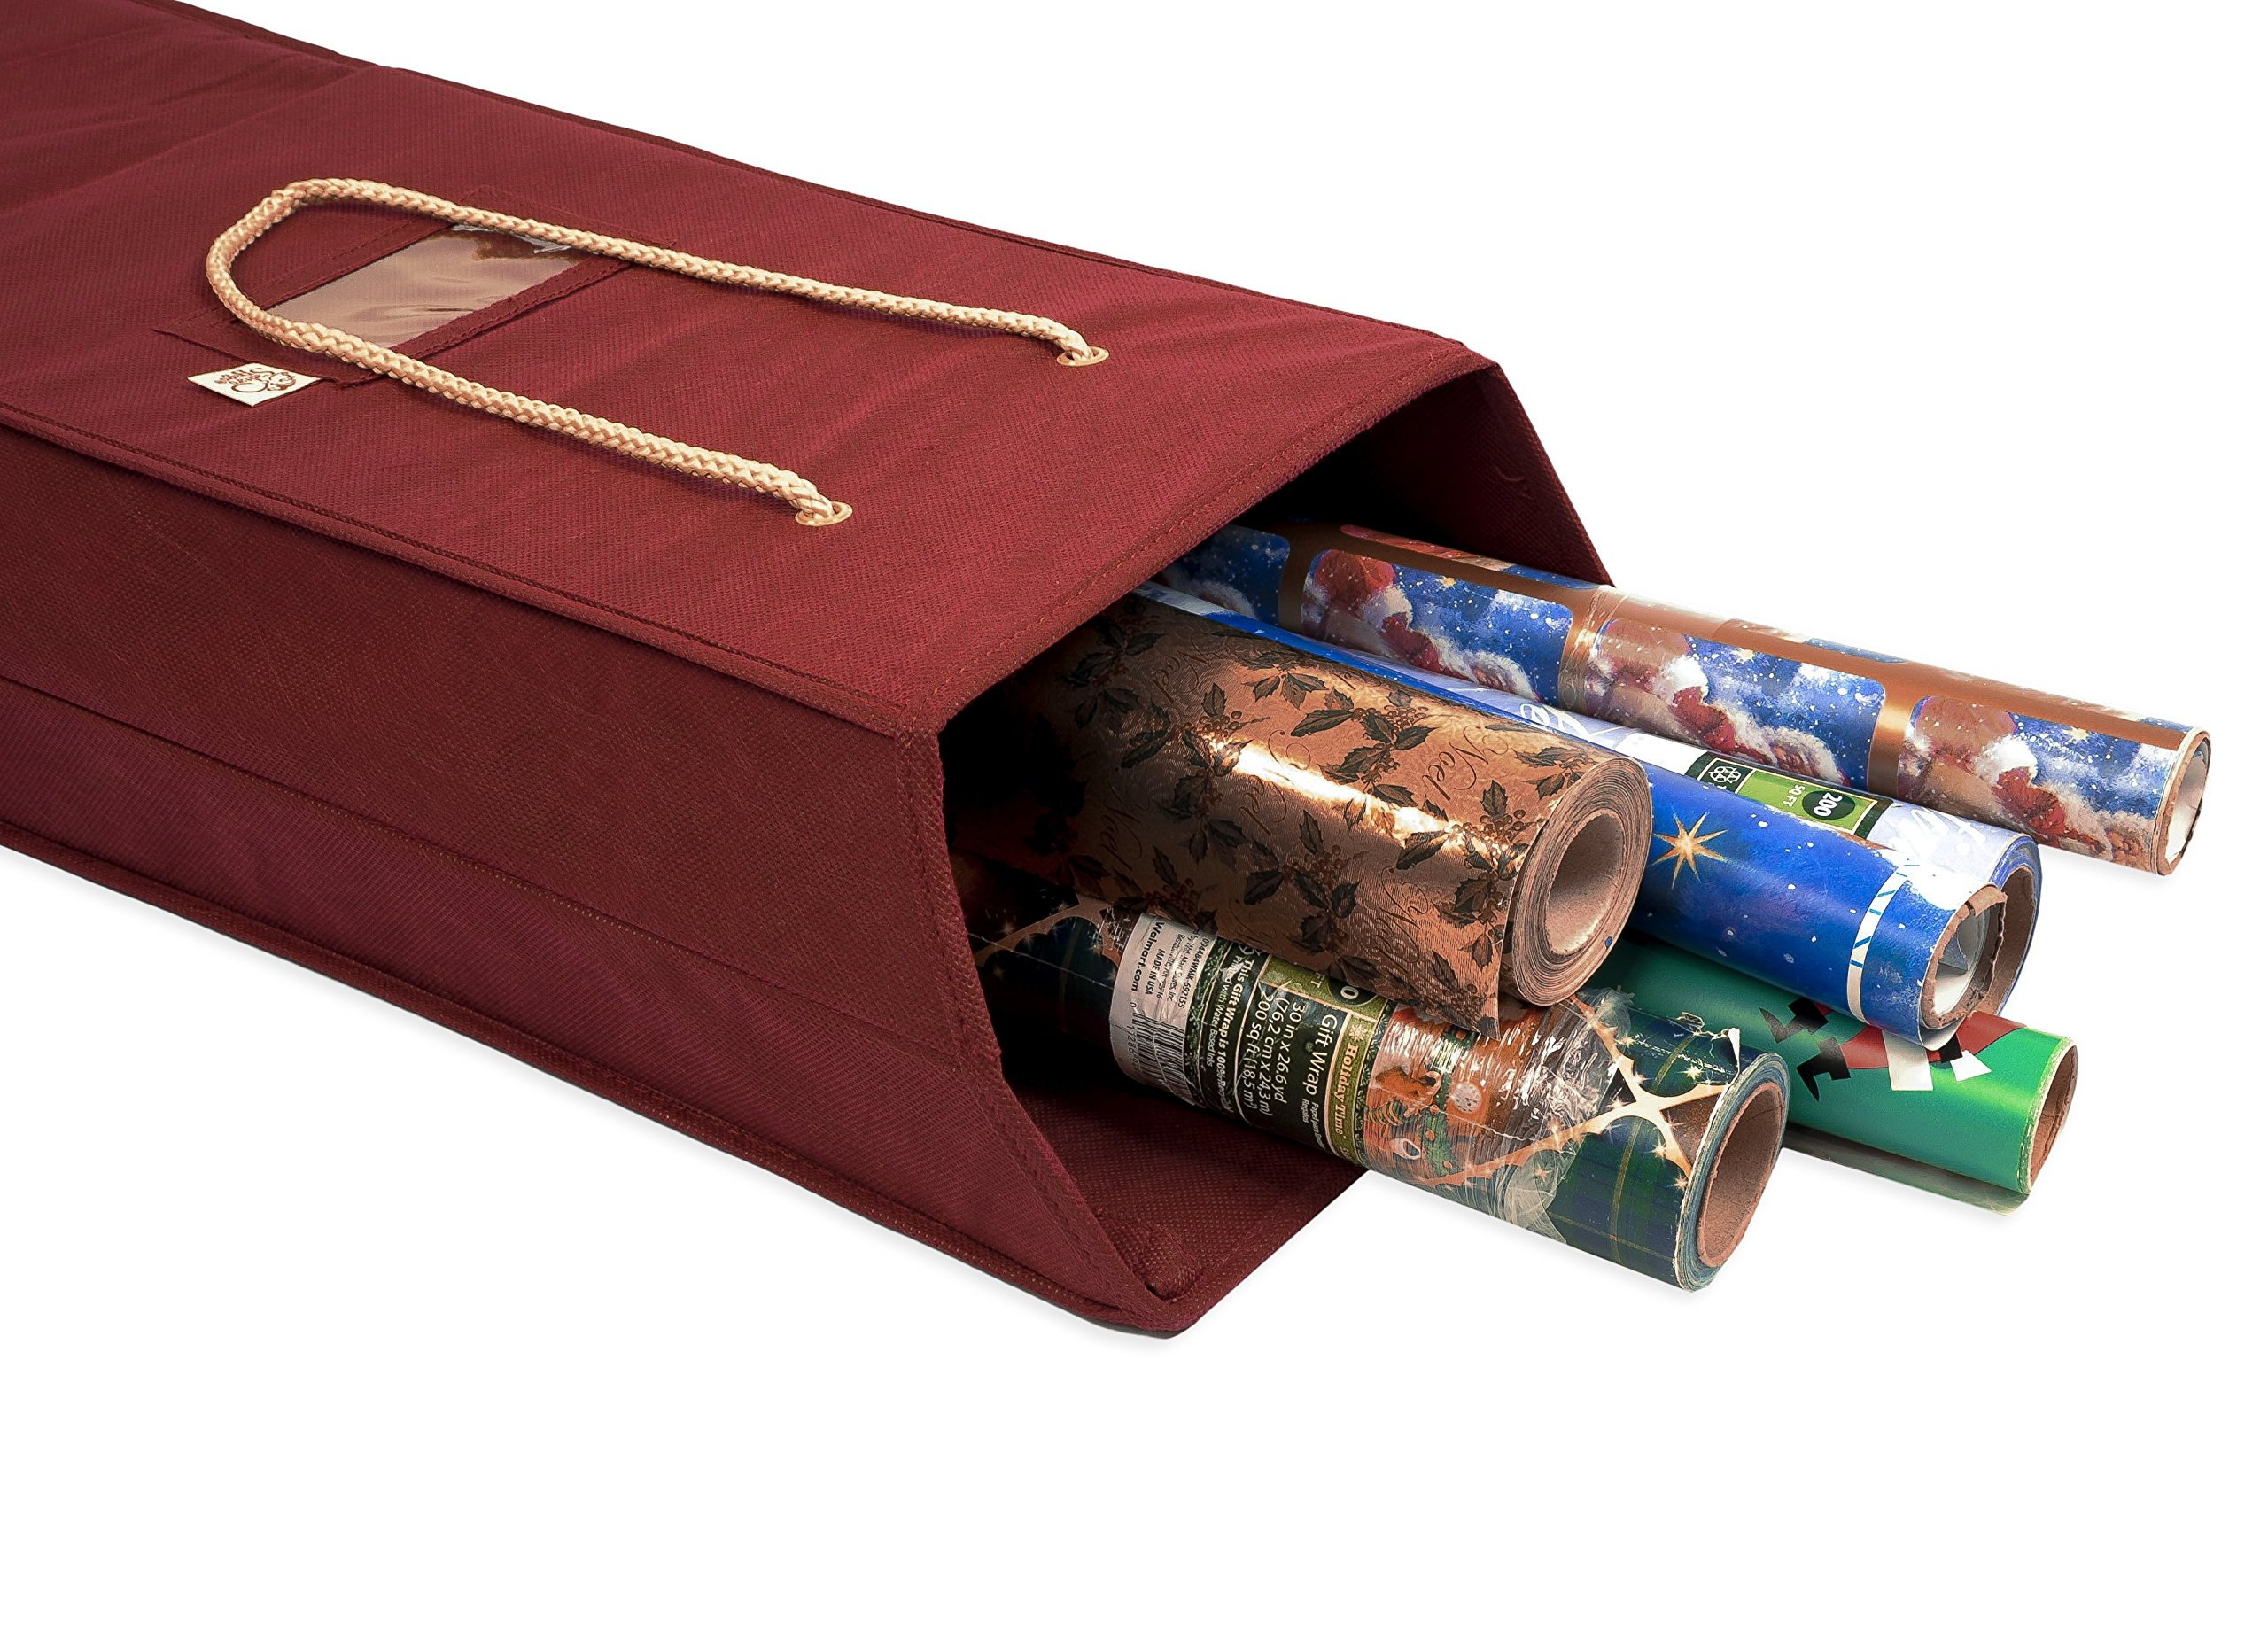 Santas Bags Decorated Wrapping Paper Storage Box